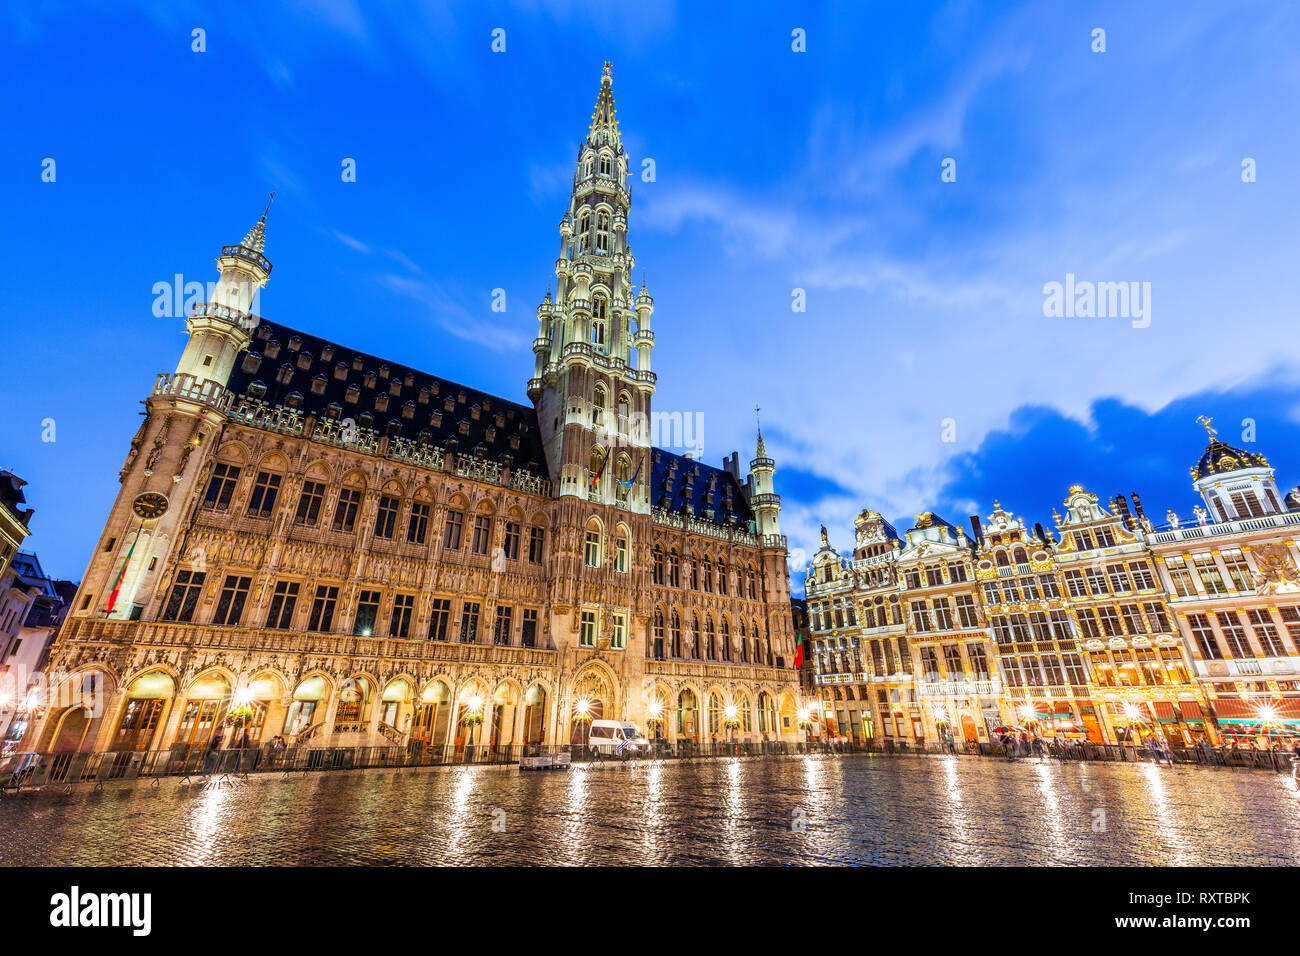 Brussels, Belgium. Grand Place. Market square surrounded by guild halls. - Stock Image